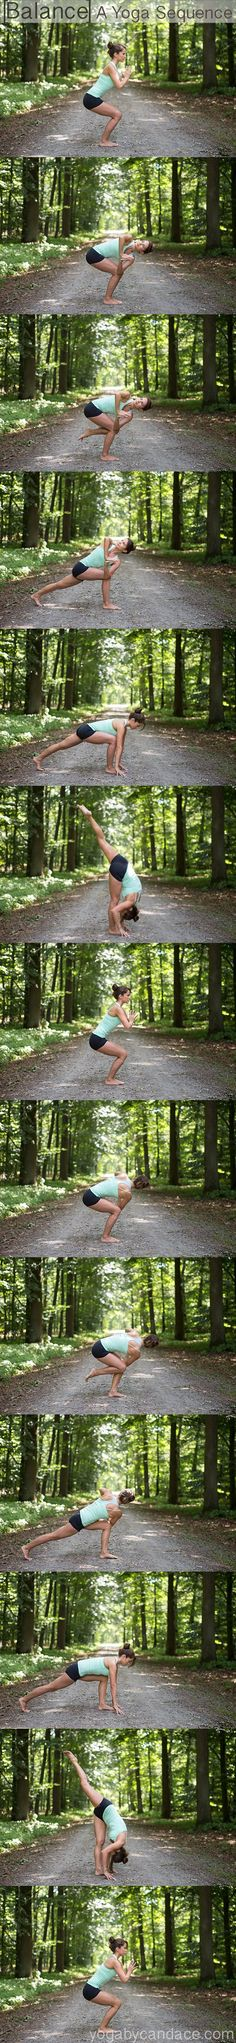 Pin it! A challenging yoga sequence you can do right from your home.